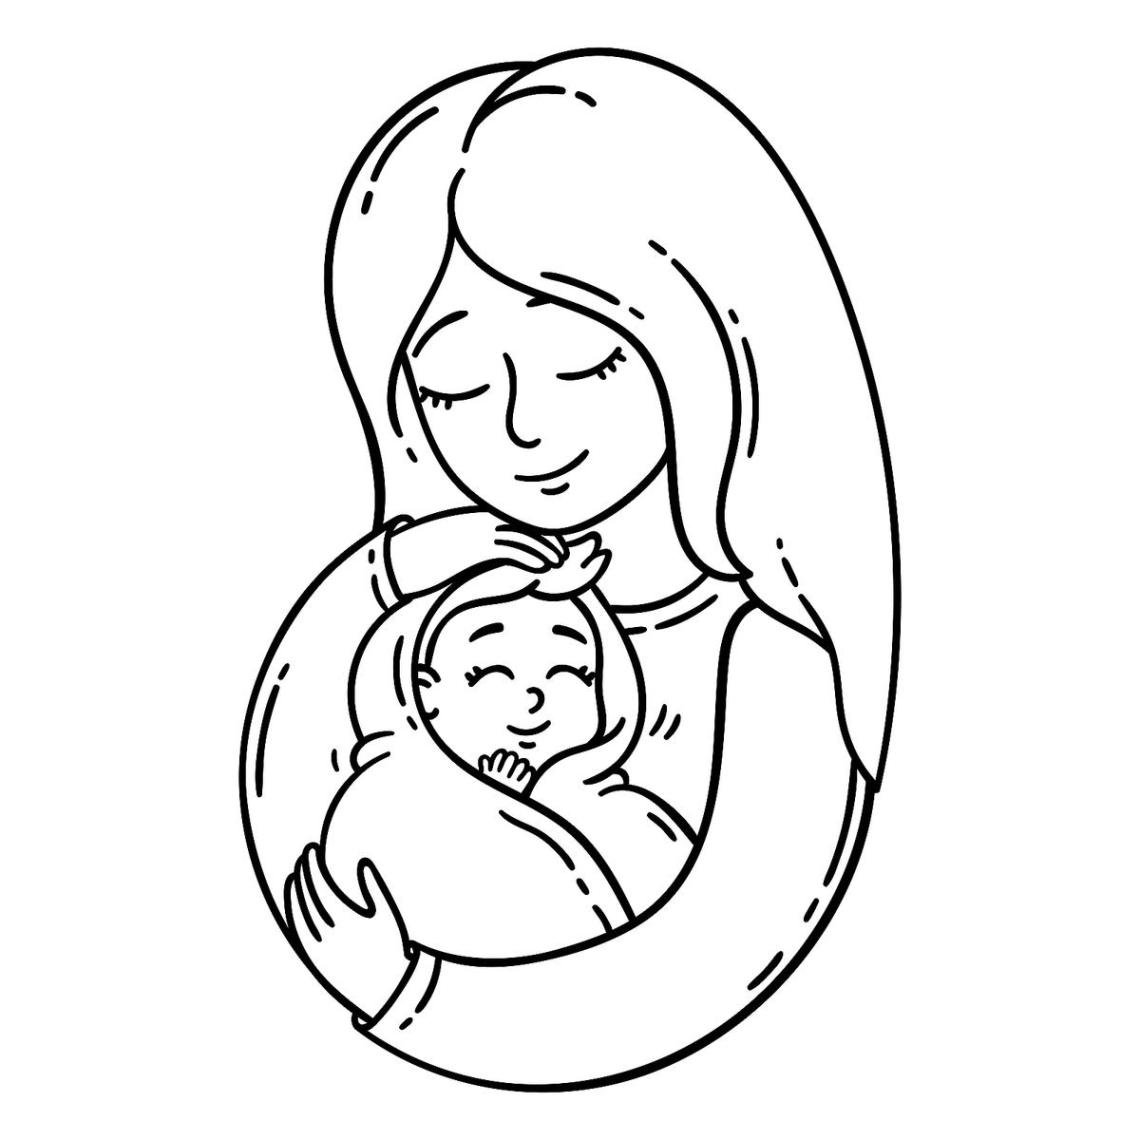 Pregnancy Coloring Pages: Free Pregnancy Printables for ... | coloring pages of baby animals and mom